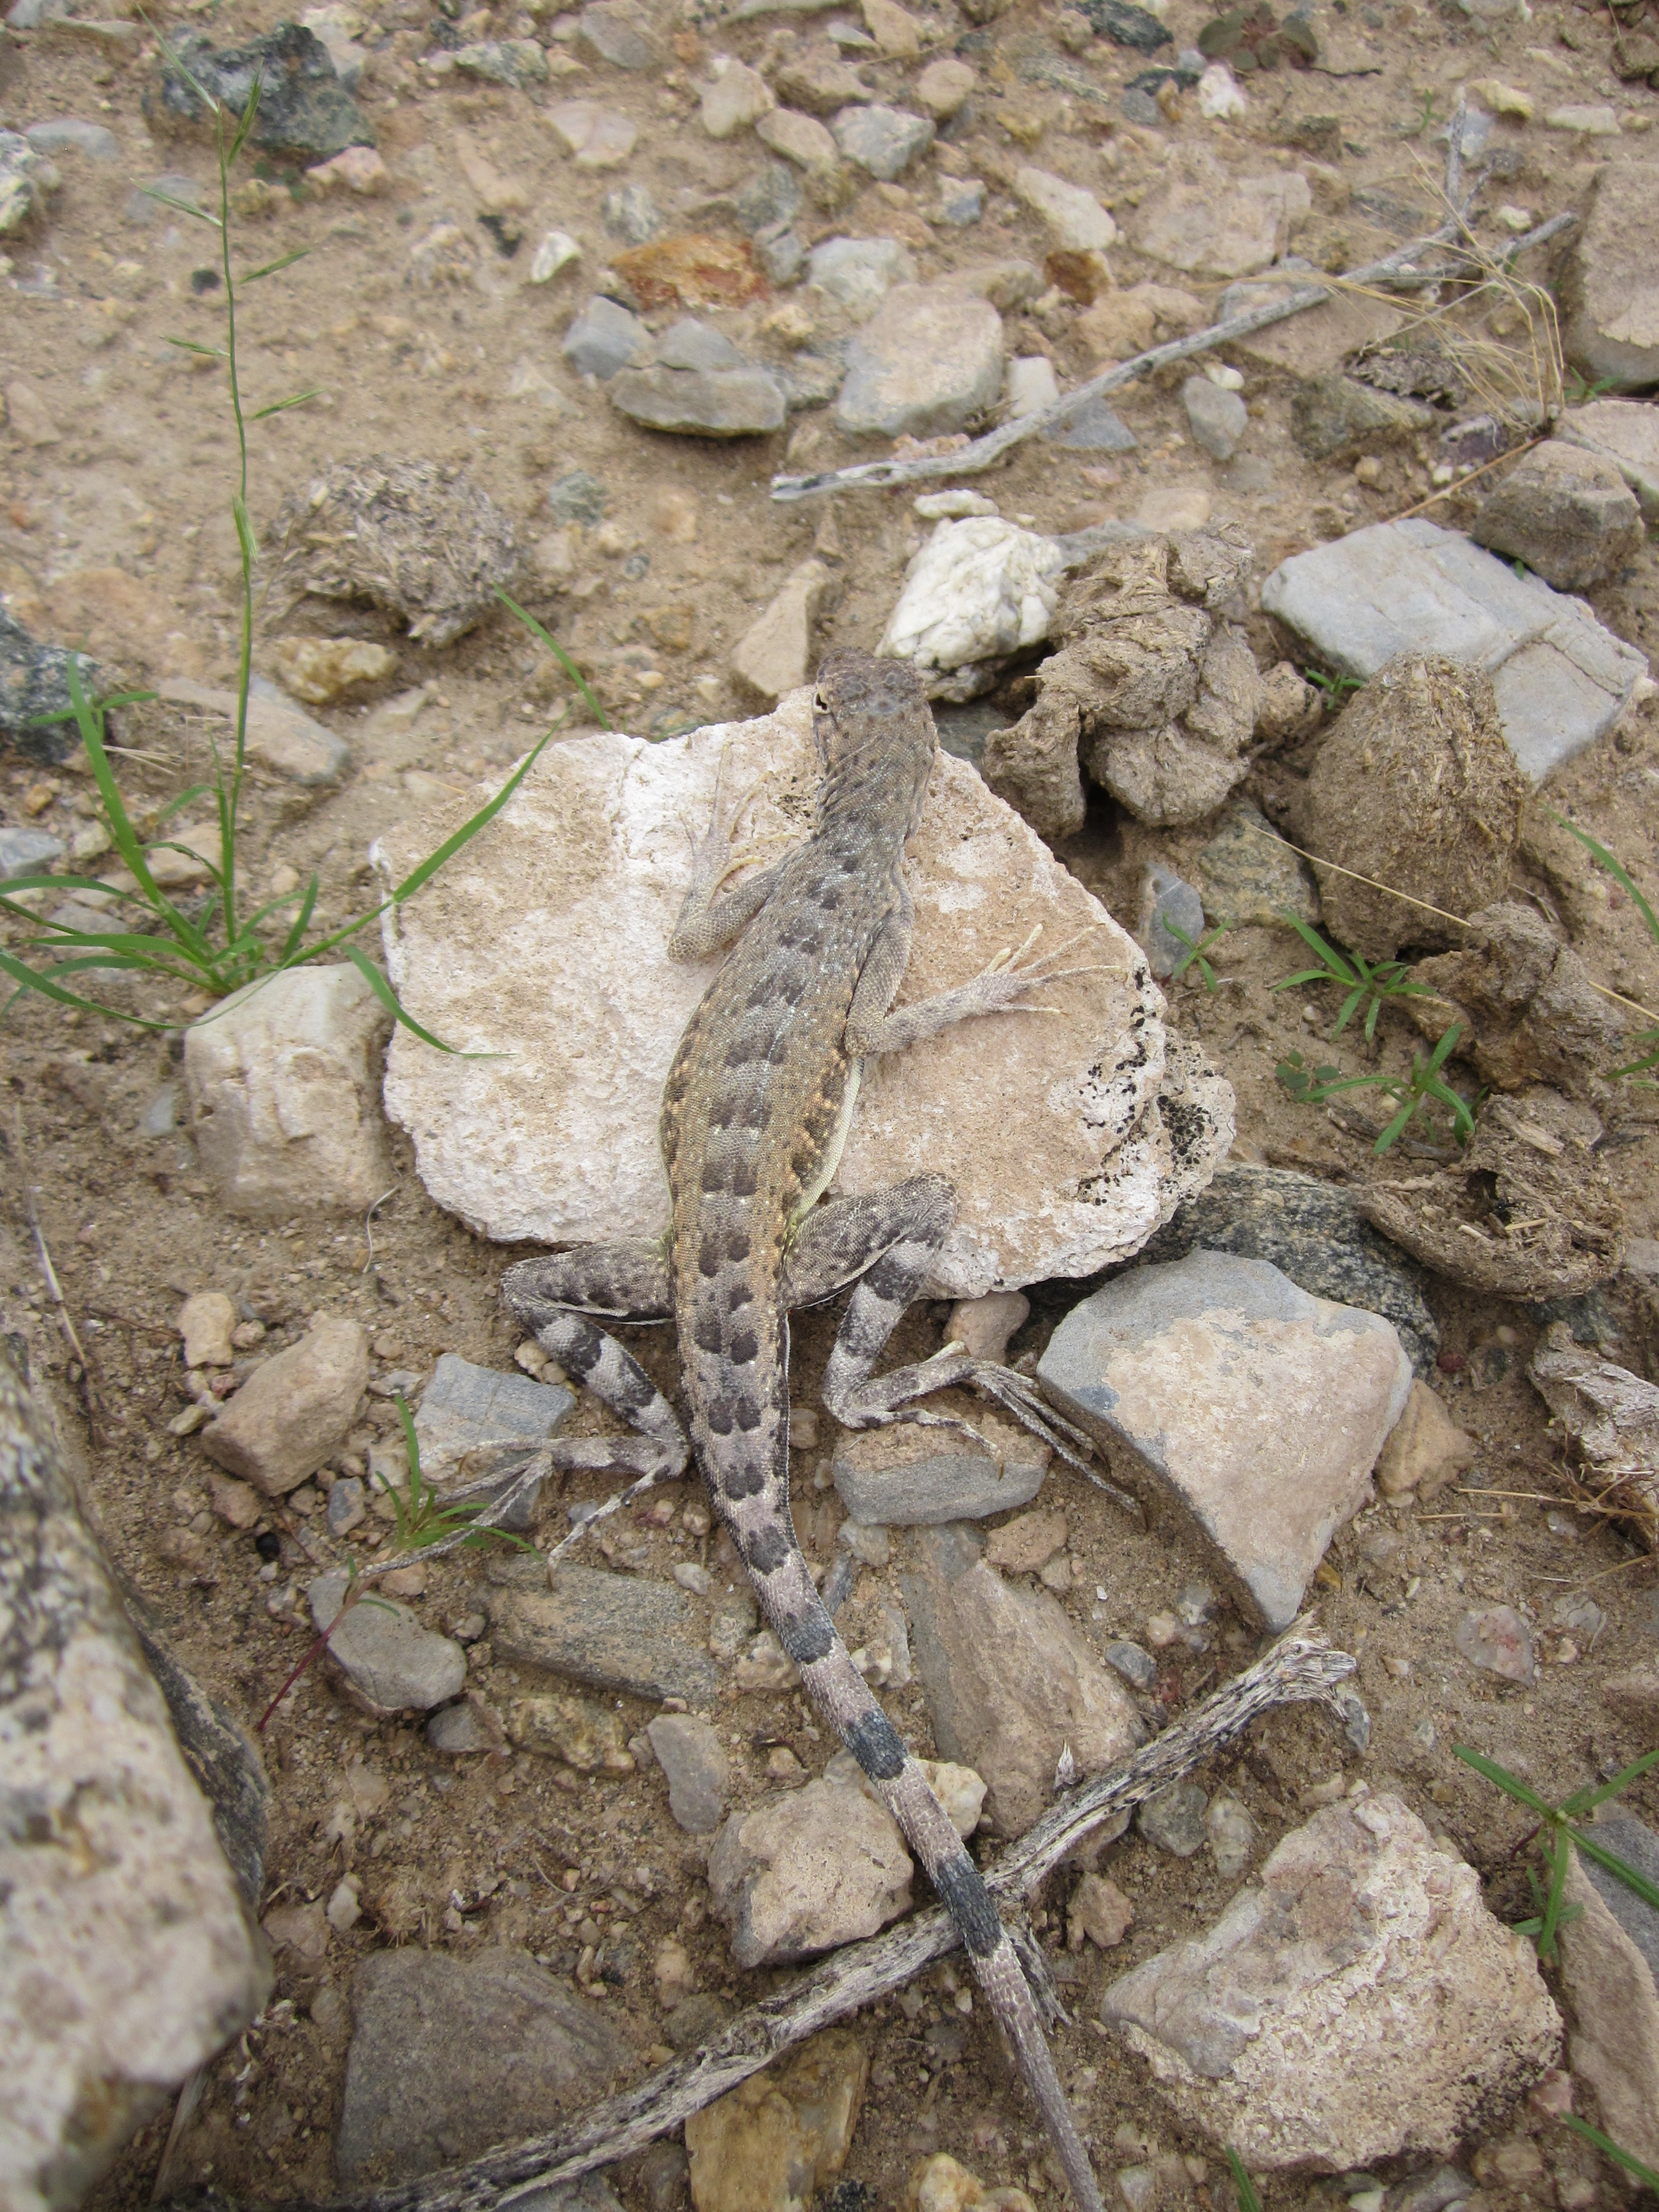 The western zebra-tailed lizard. Take a look at those great big hind feet with the long toes. Those things make this lizard very fast. A whole lot faster than me.